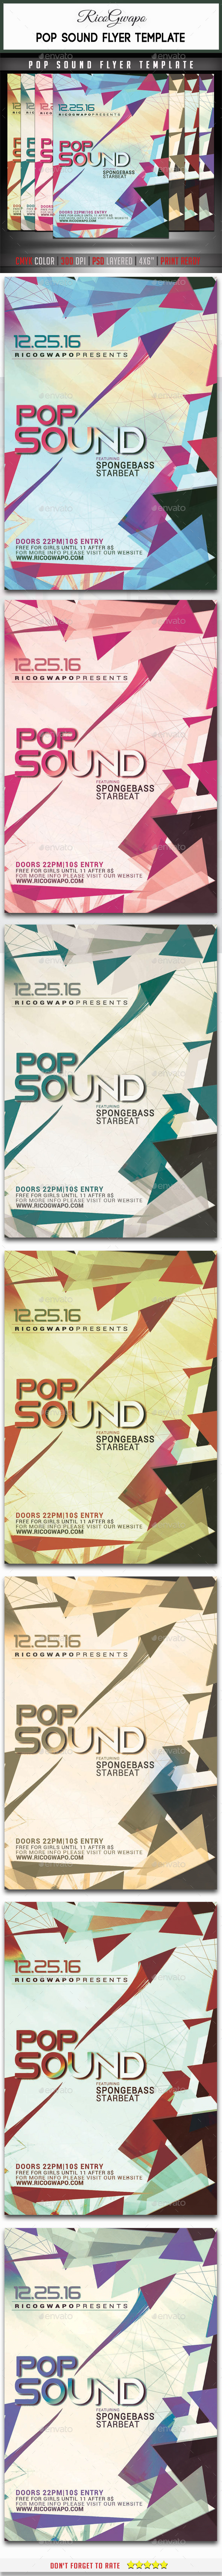 GraphicRiver Pop Sound Flyer Template 10642592